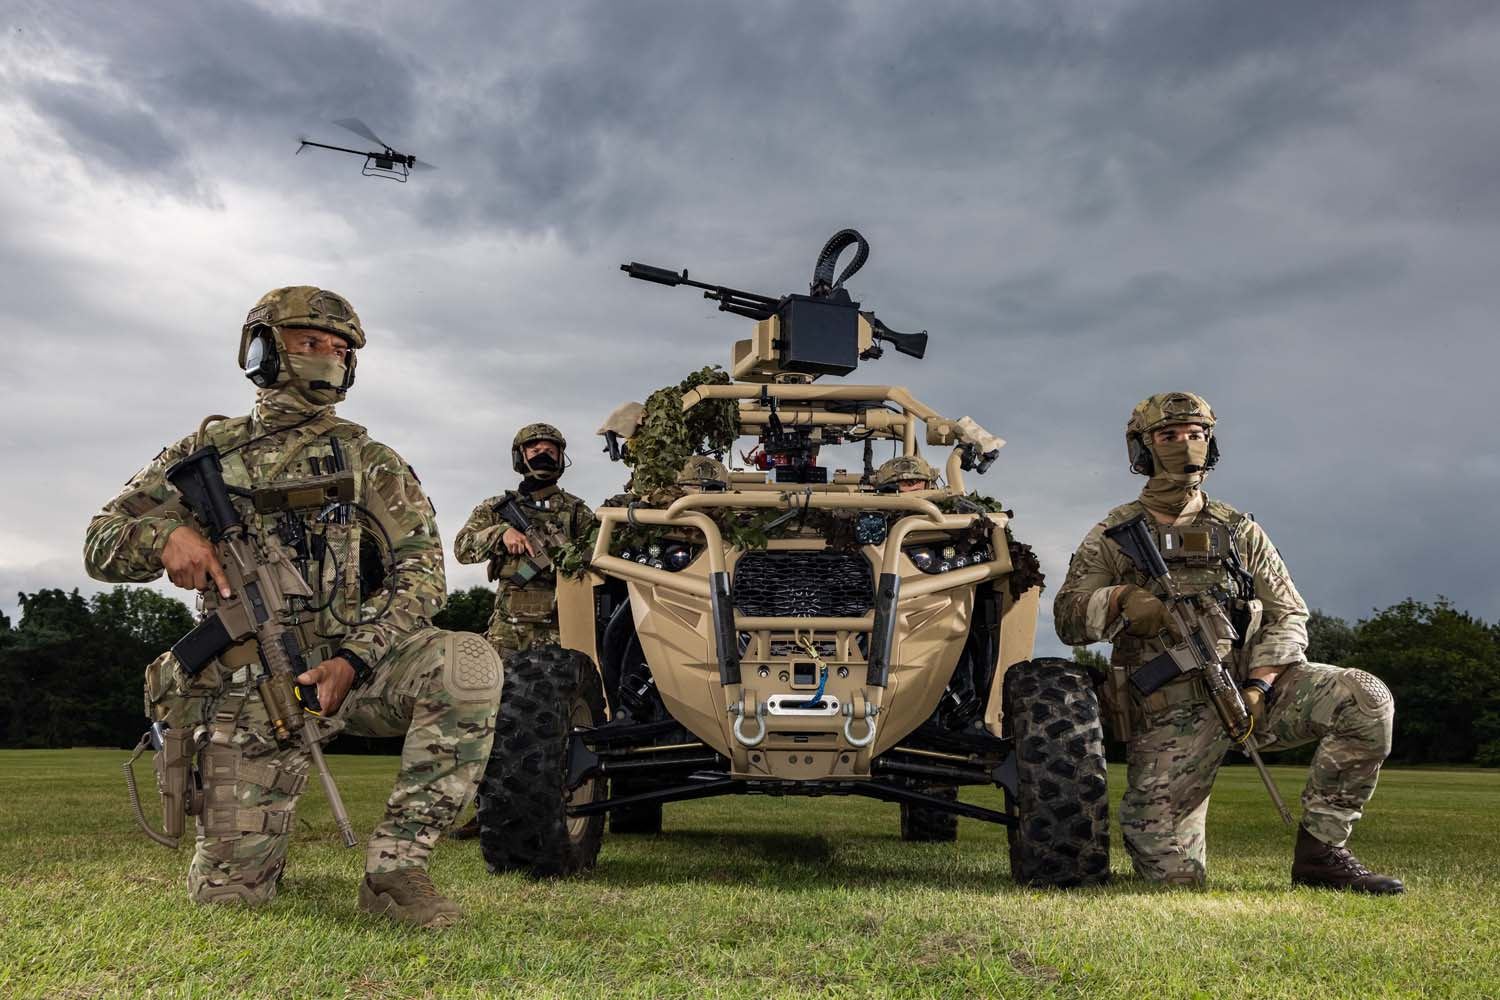 American-made Polaris MRZR-D Ultralight 4x4 Off-roader Tested by Royal Marines